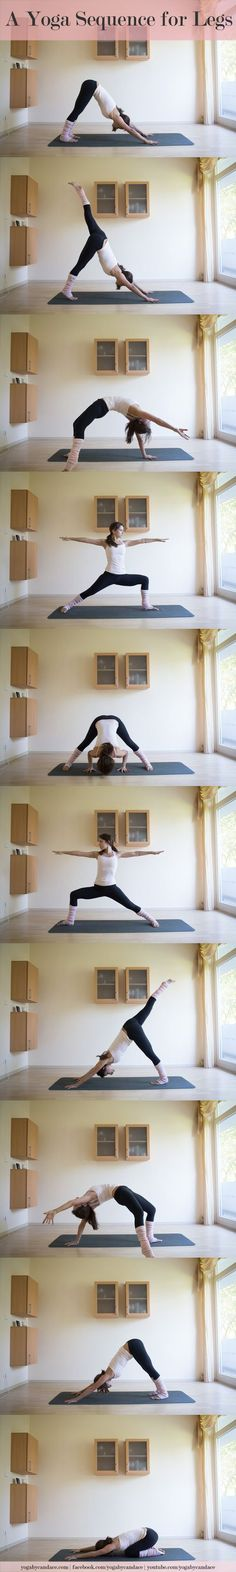 Yoga sequence for legs